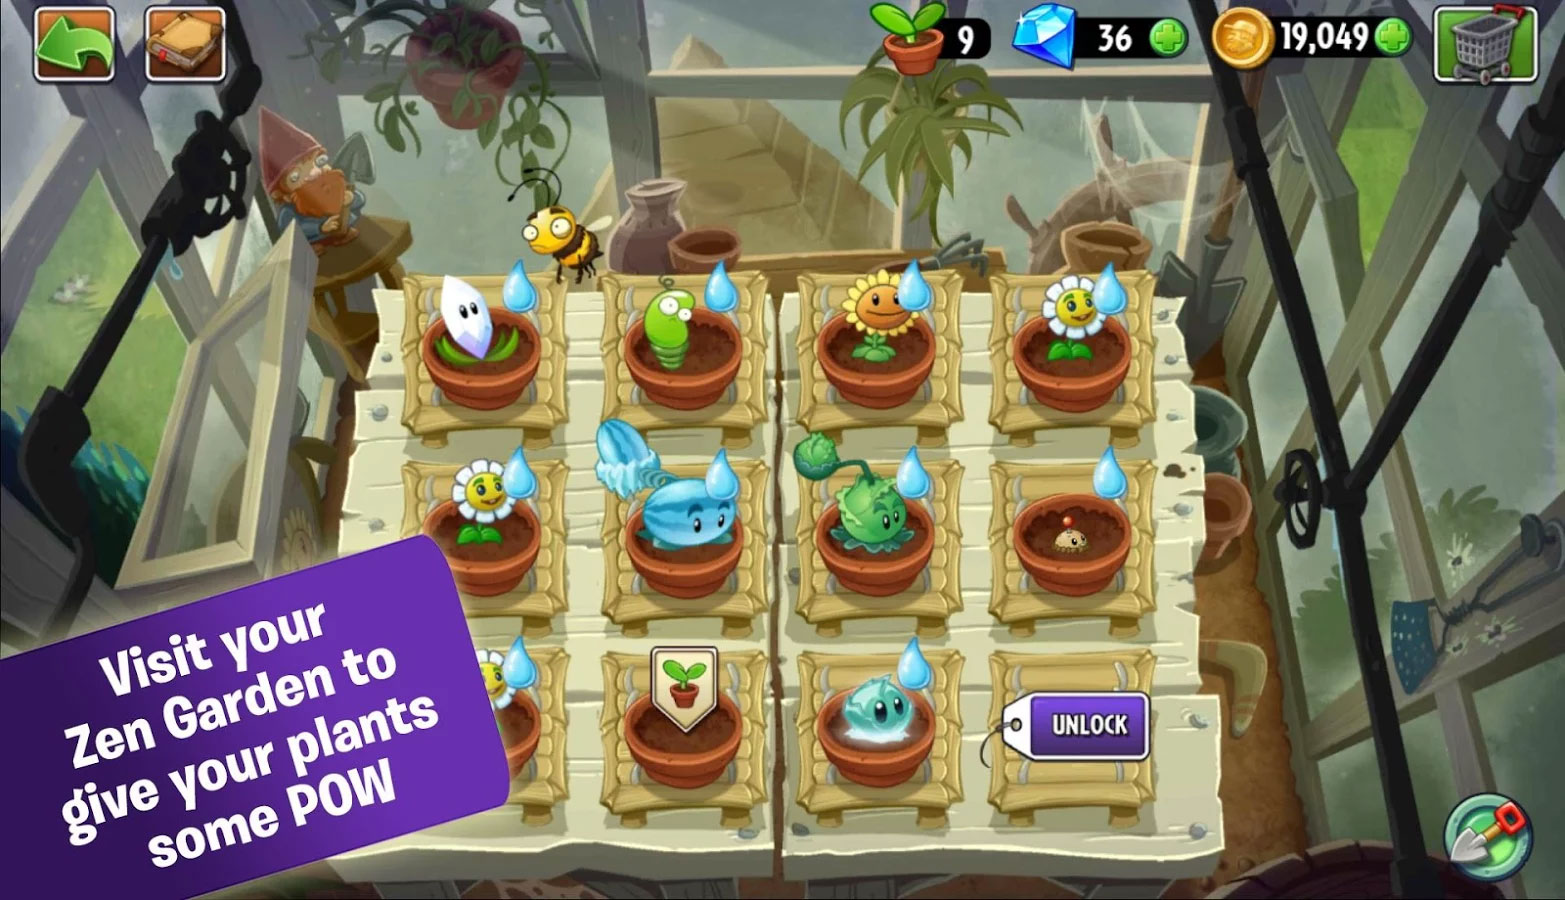 http://www.apktops.ir/wp-content/uploads/2014/02/Plants-vs.-Zombies-2-4.jpg